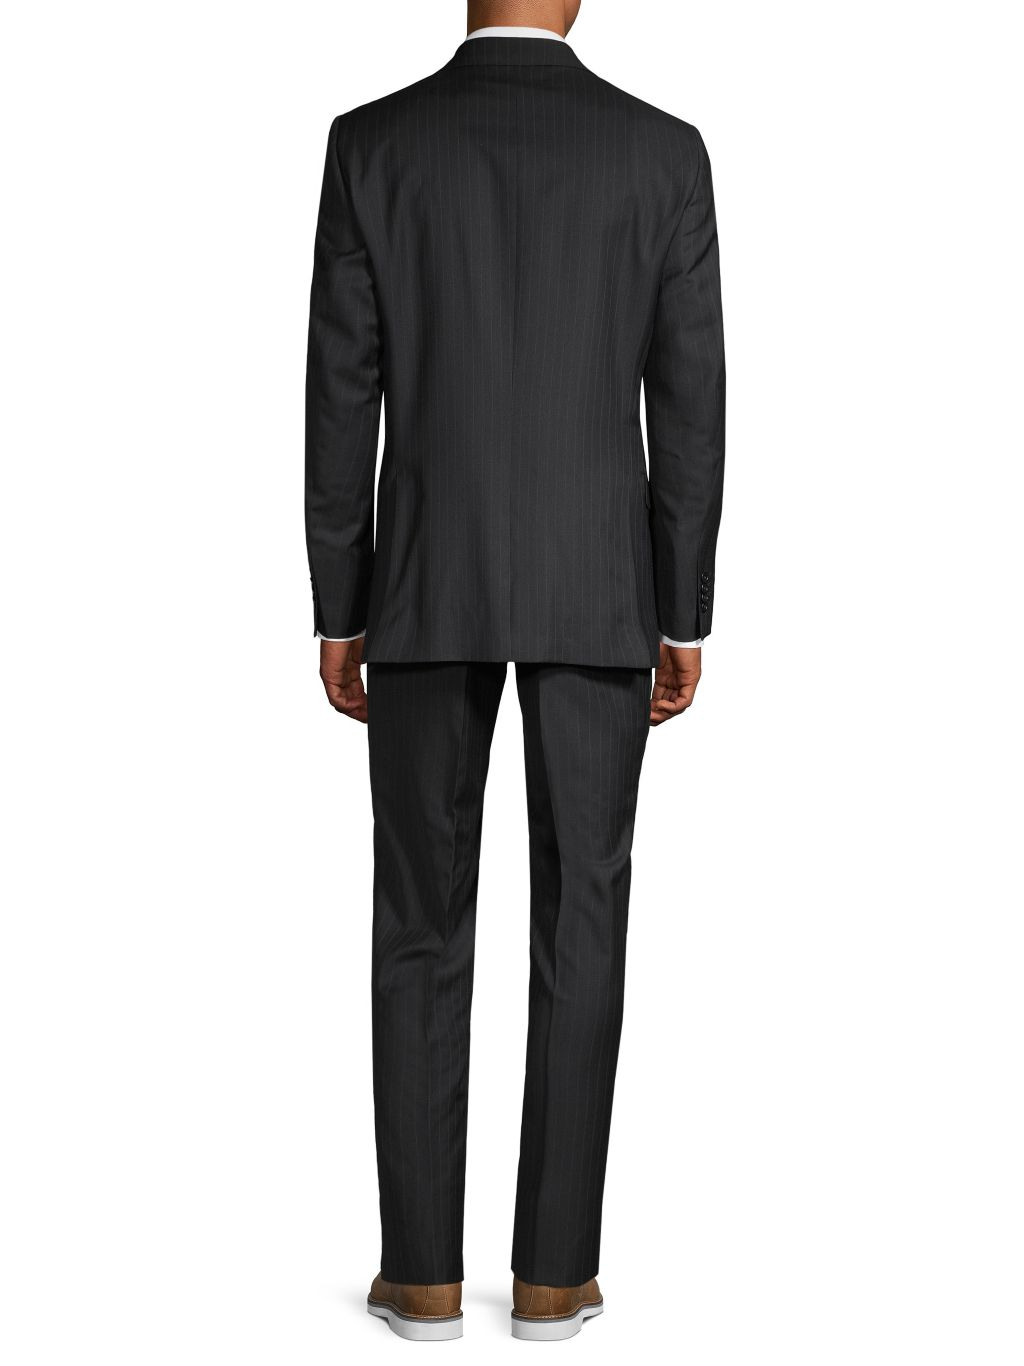 Saks Fifth Avenue Made in Italy Classic-Fit Pinstriped Wool Suit